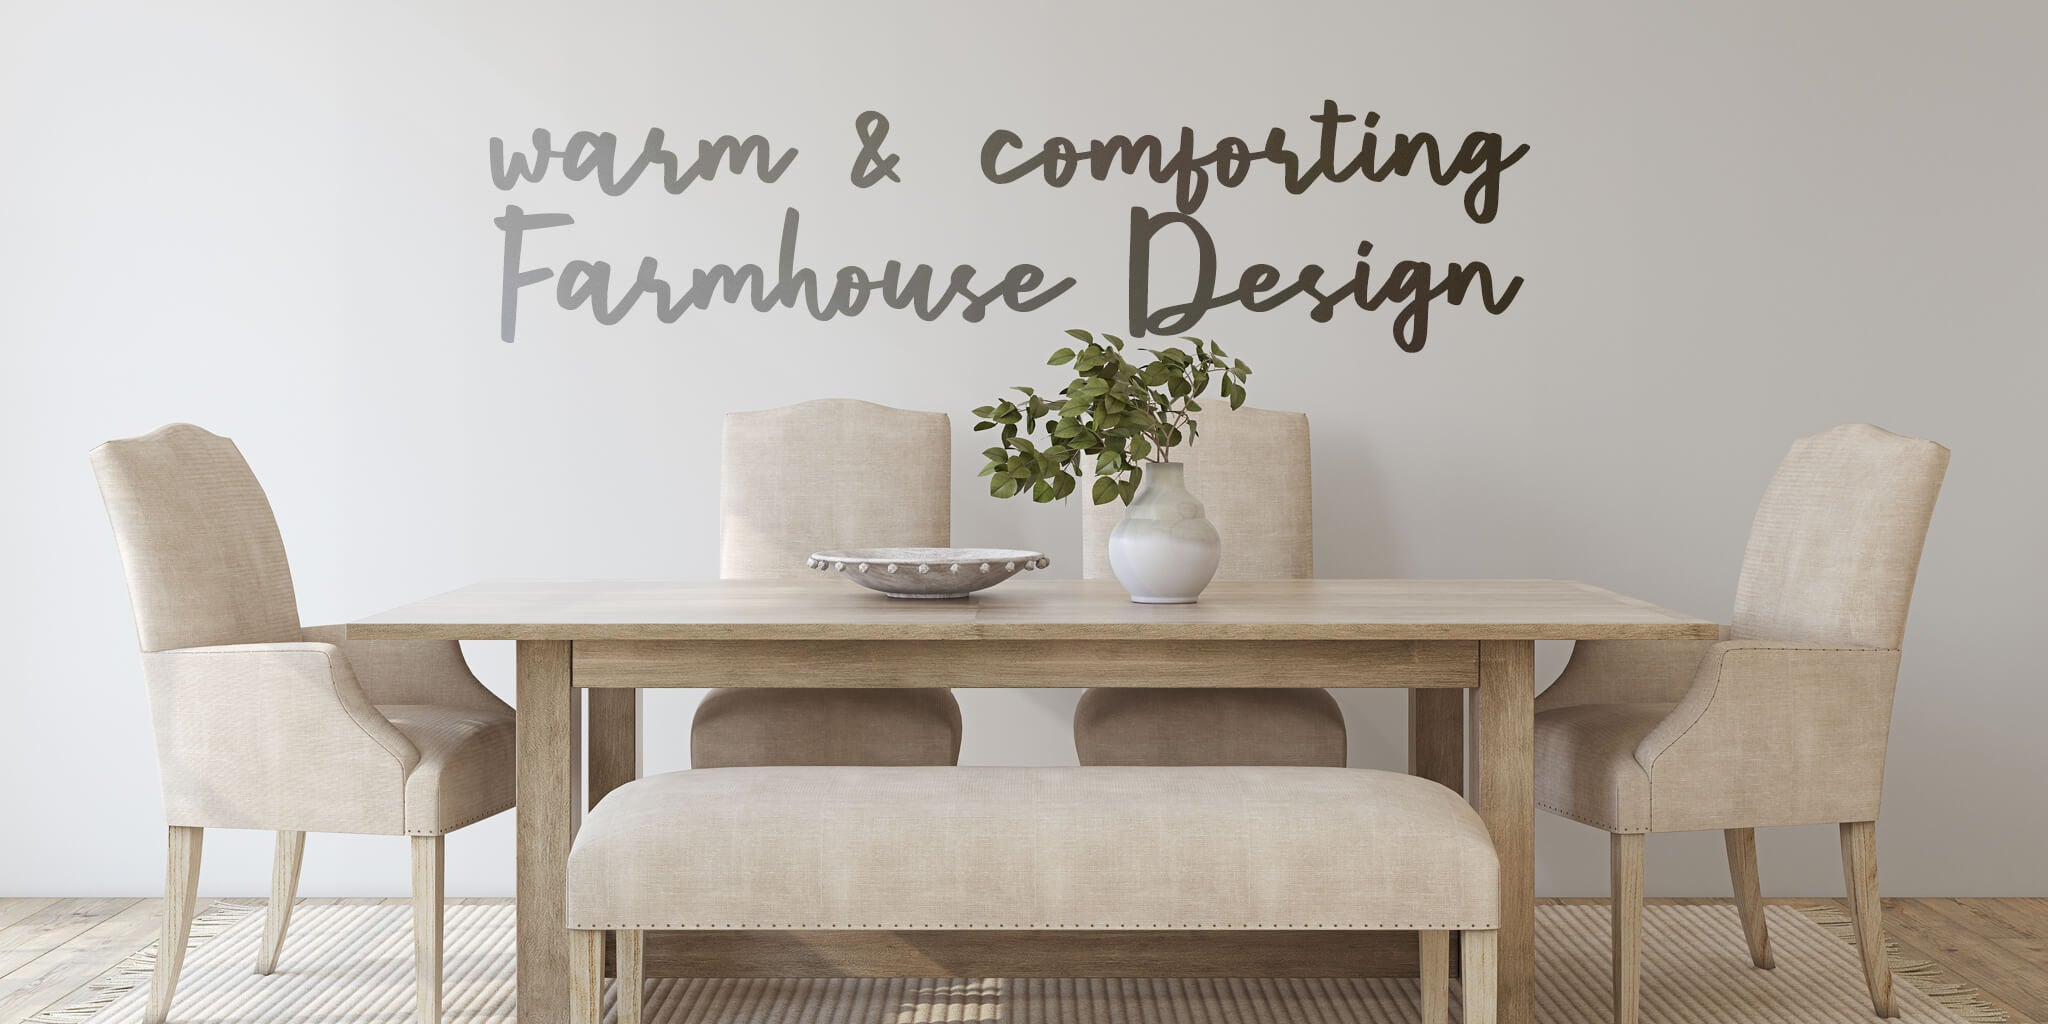 Warm and Comforting Modern Farmhouse Design